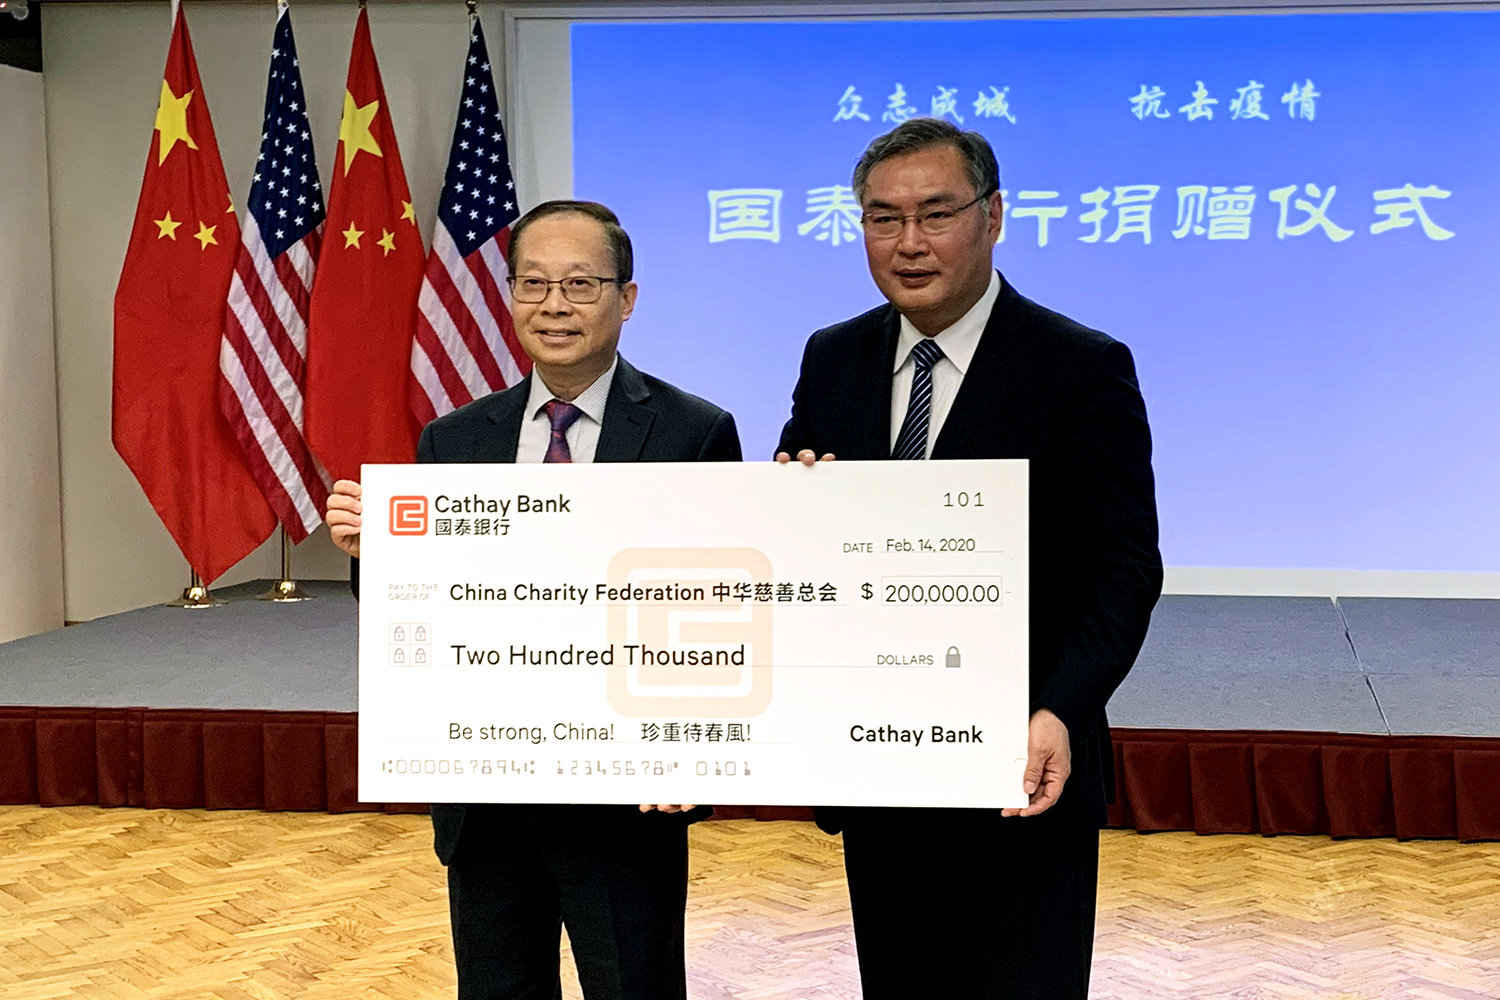 Pin Tai (left), Chief Executive Officer of Cathay Bank, presented donation check to Zhang Ping (right), the Consul General of the Consulate General of the People's Republic of China in Los Angeles, in support of the coronavirus control efforts in China.